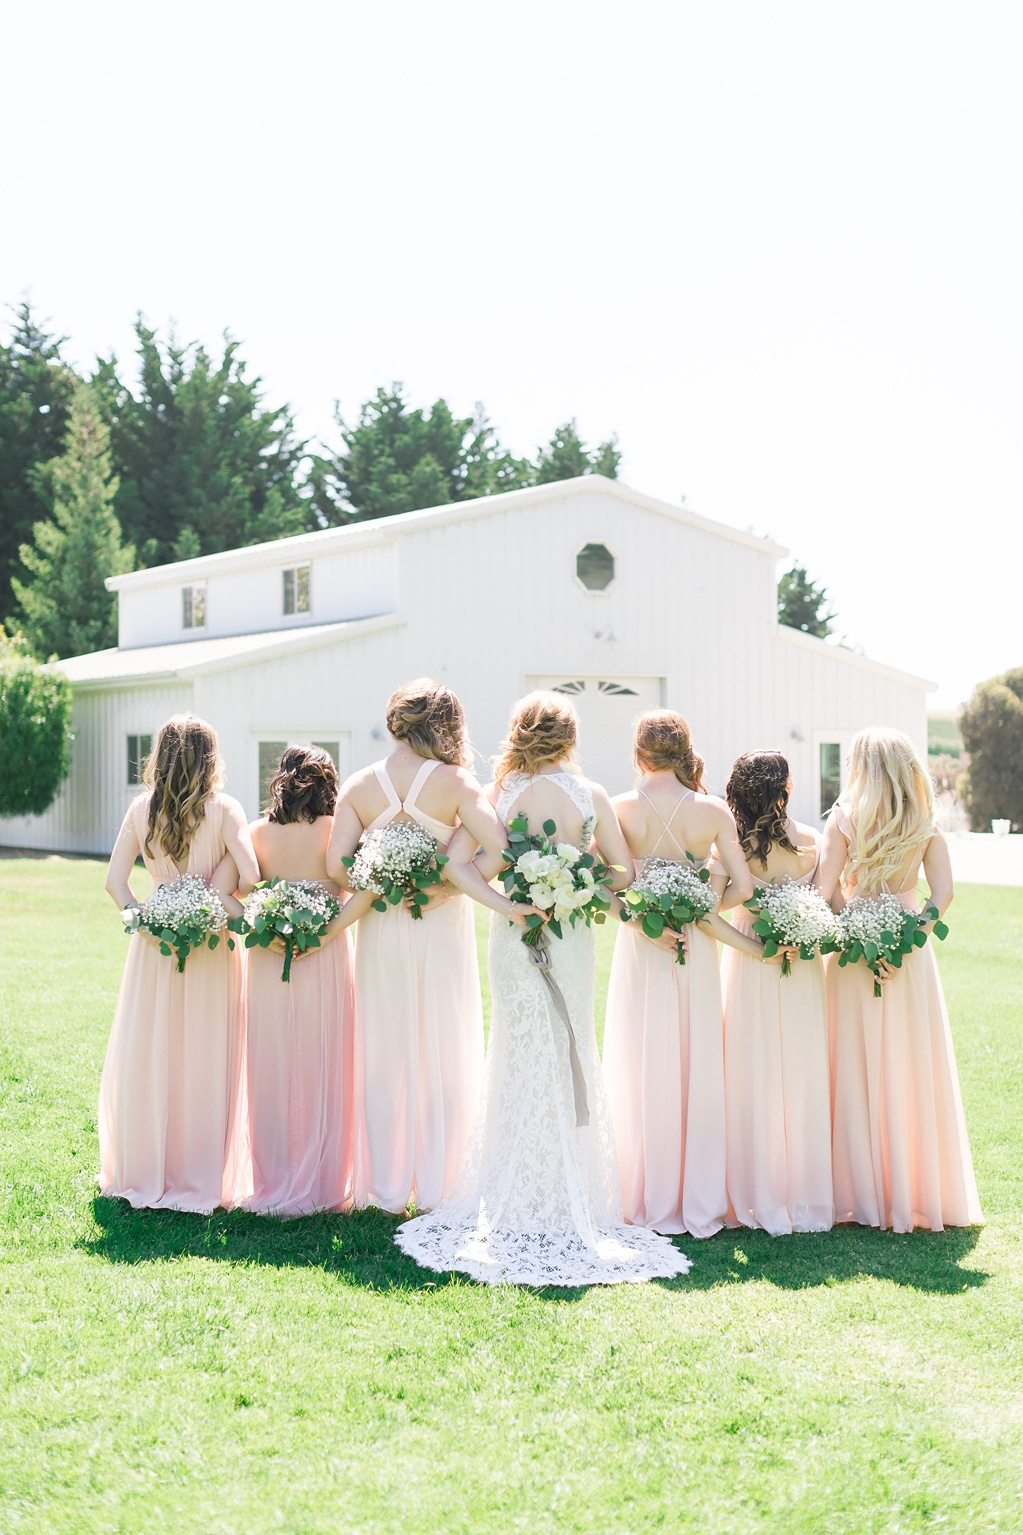 White Barn Inspired Summer Wedding In The Valley of Arroyo Grande, California by Wedding Photographer Madison Ellis. (72)